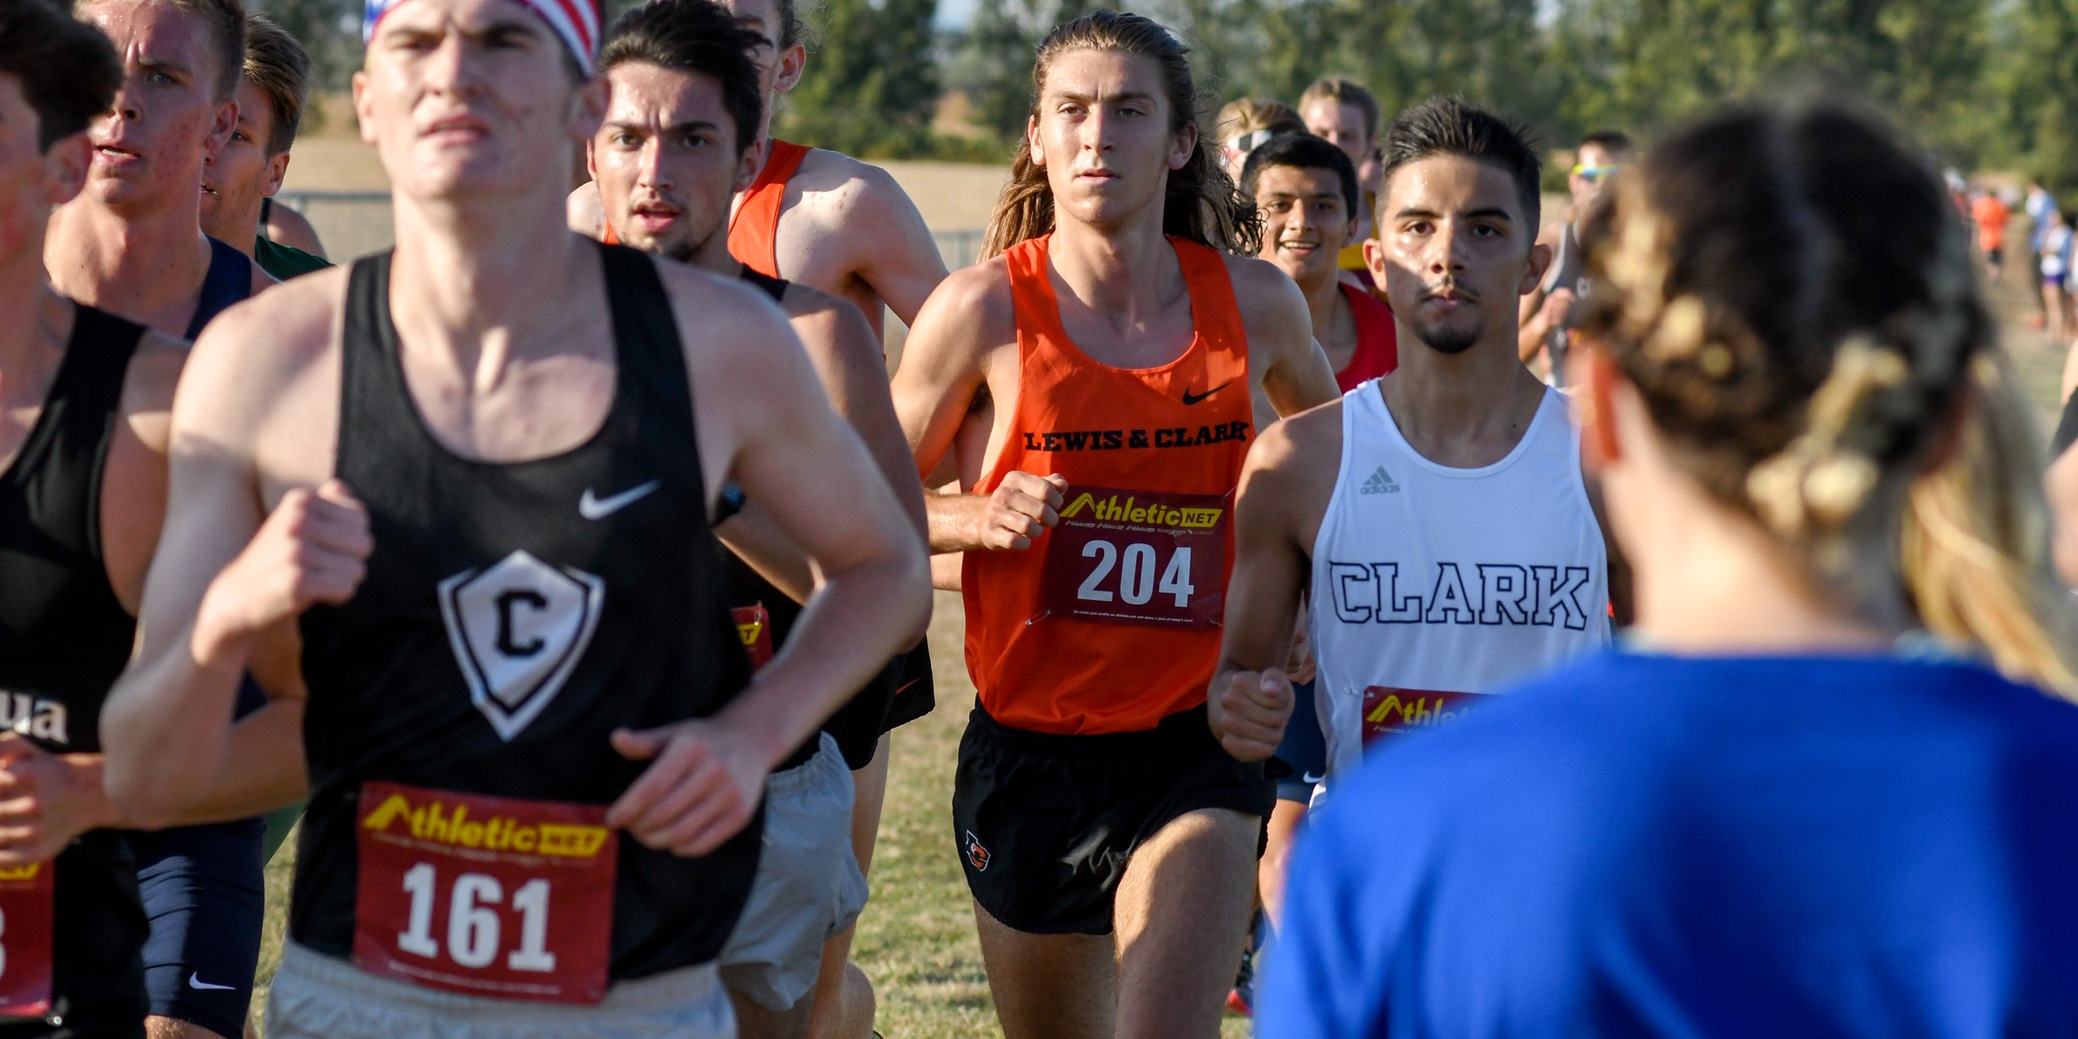 White, Richardson and Swanberg lead way for Pios at Ash Creek Invitational